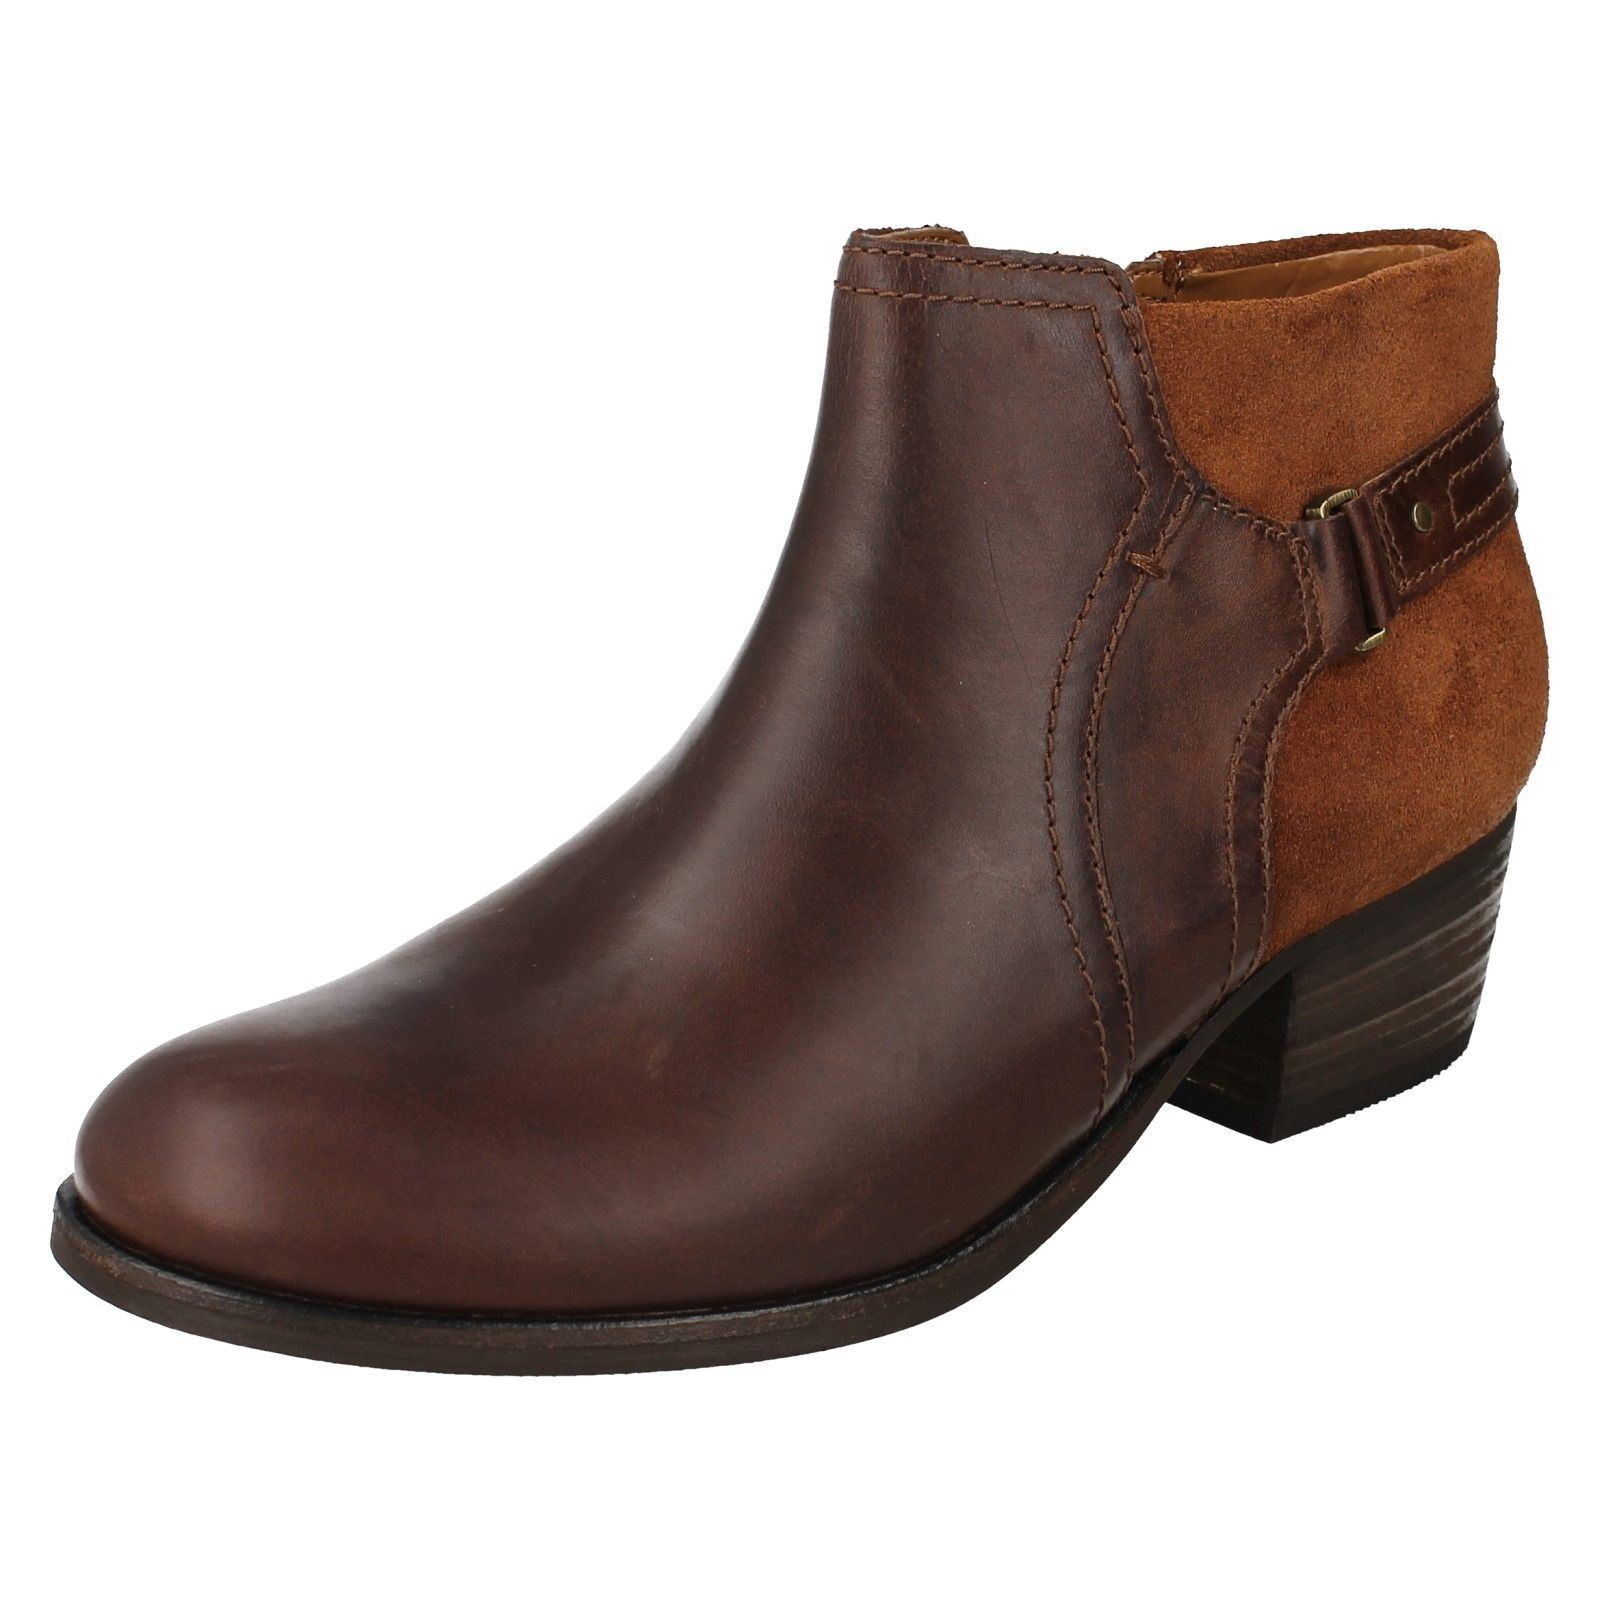 mesdames clarks clarks mesdames bottines style - maypearl lilas ffdc00